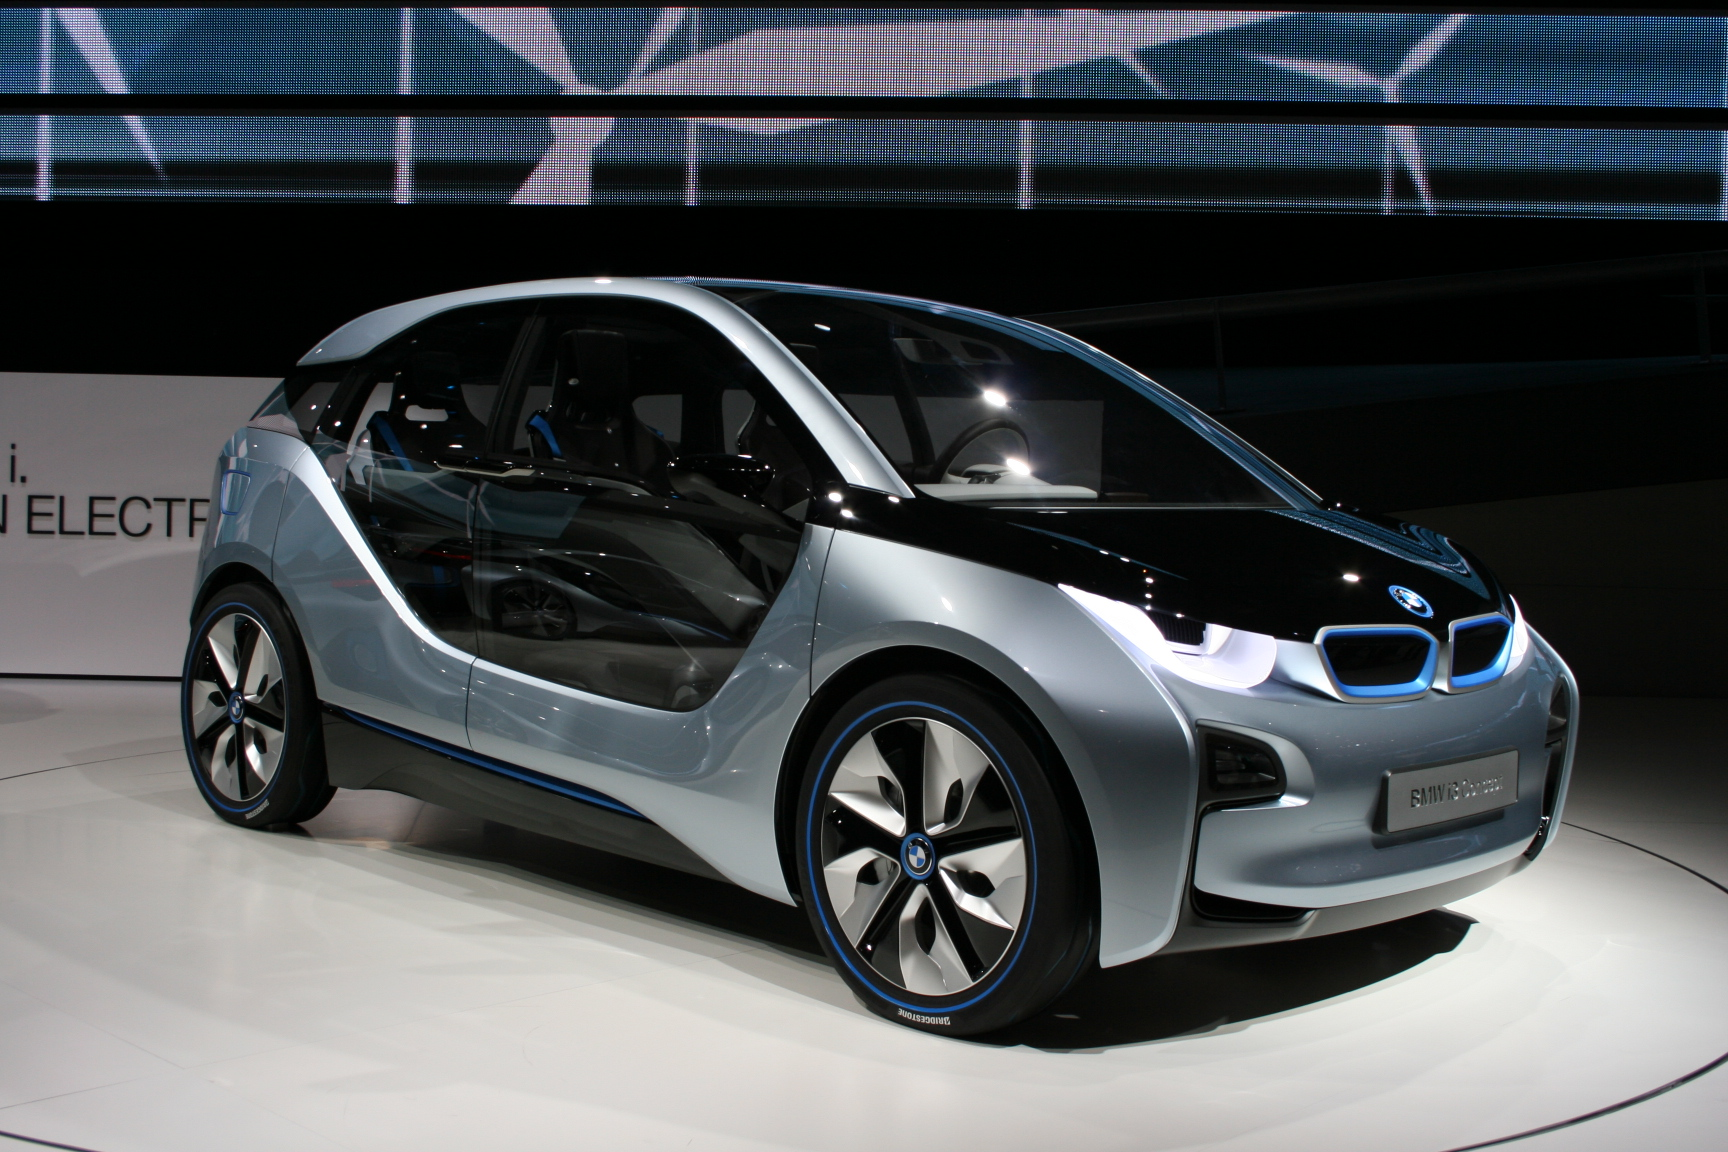 file bmw i3 concept wikimedia commons. Black Bedroom Furniture Sets. Home Design Ideas